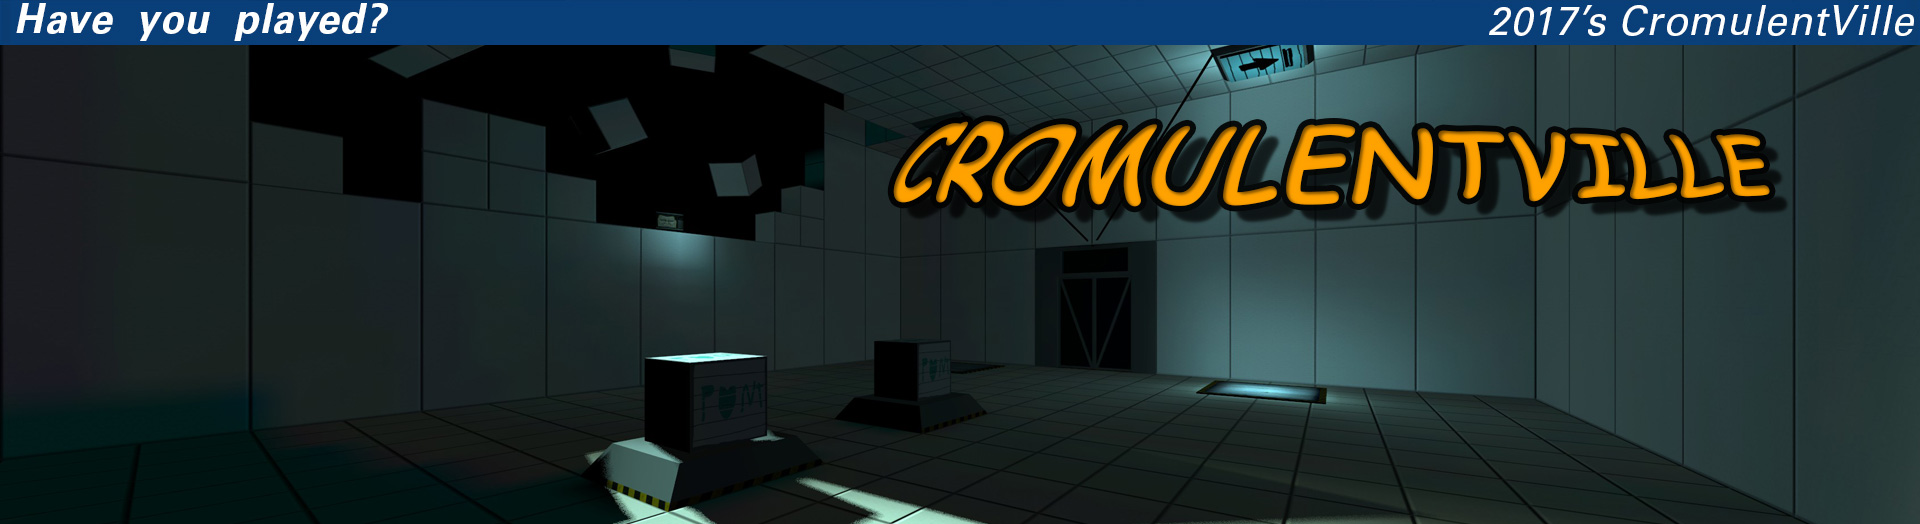 Have you played CromulentVille?